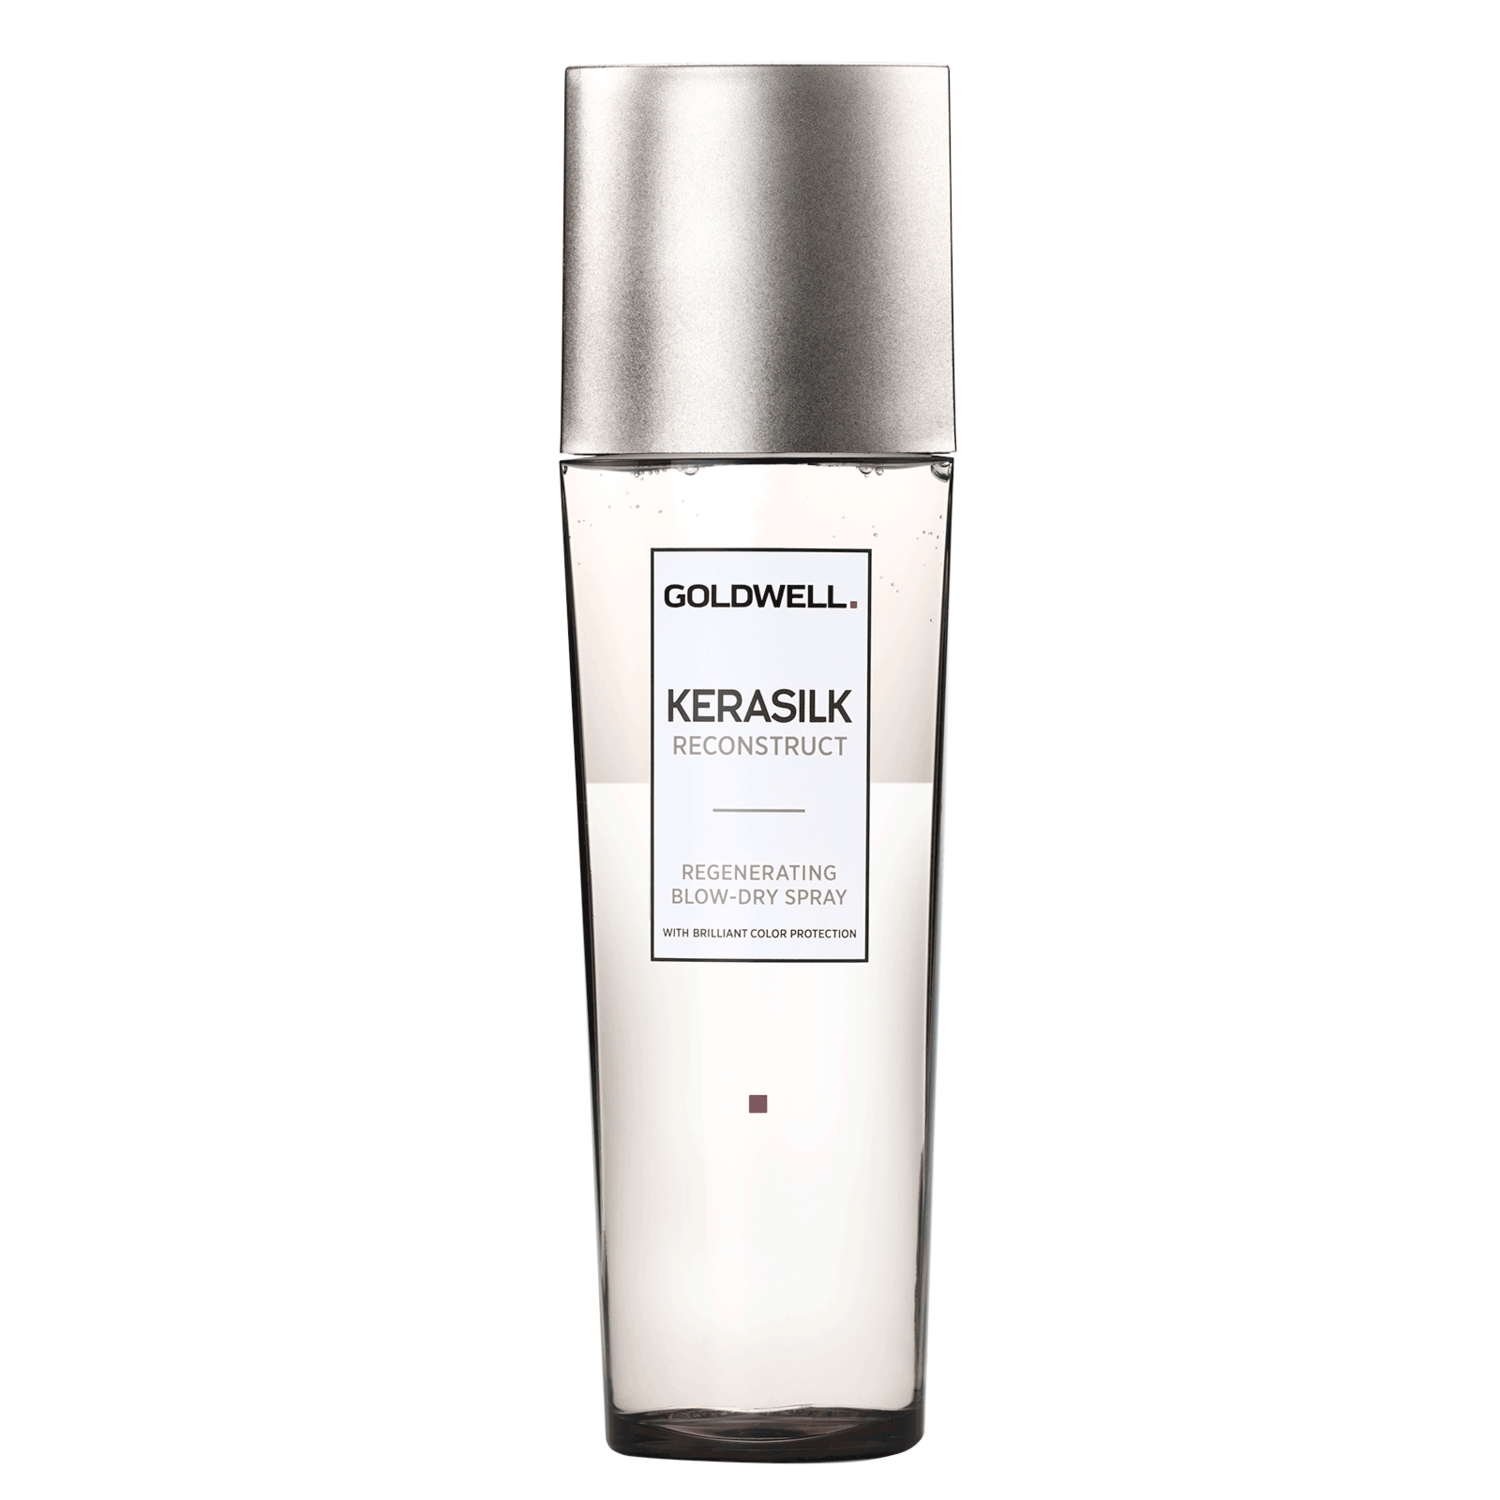 Goldwell Kerasilk Reconstruct Regeneration Blow Dry Spray 125 ml